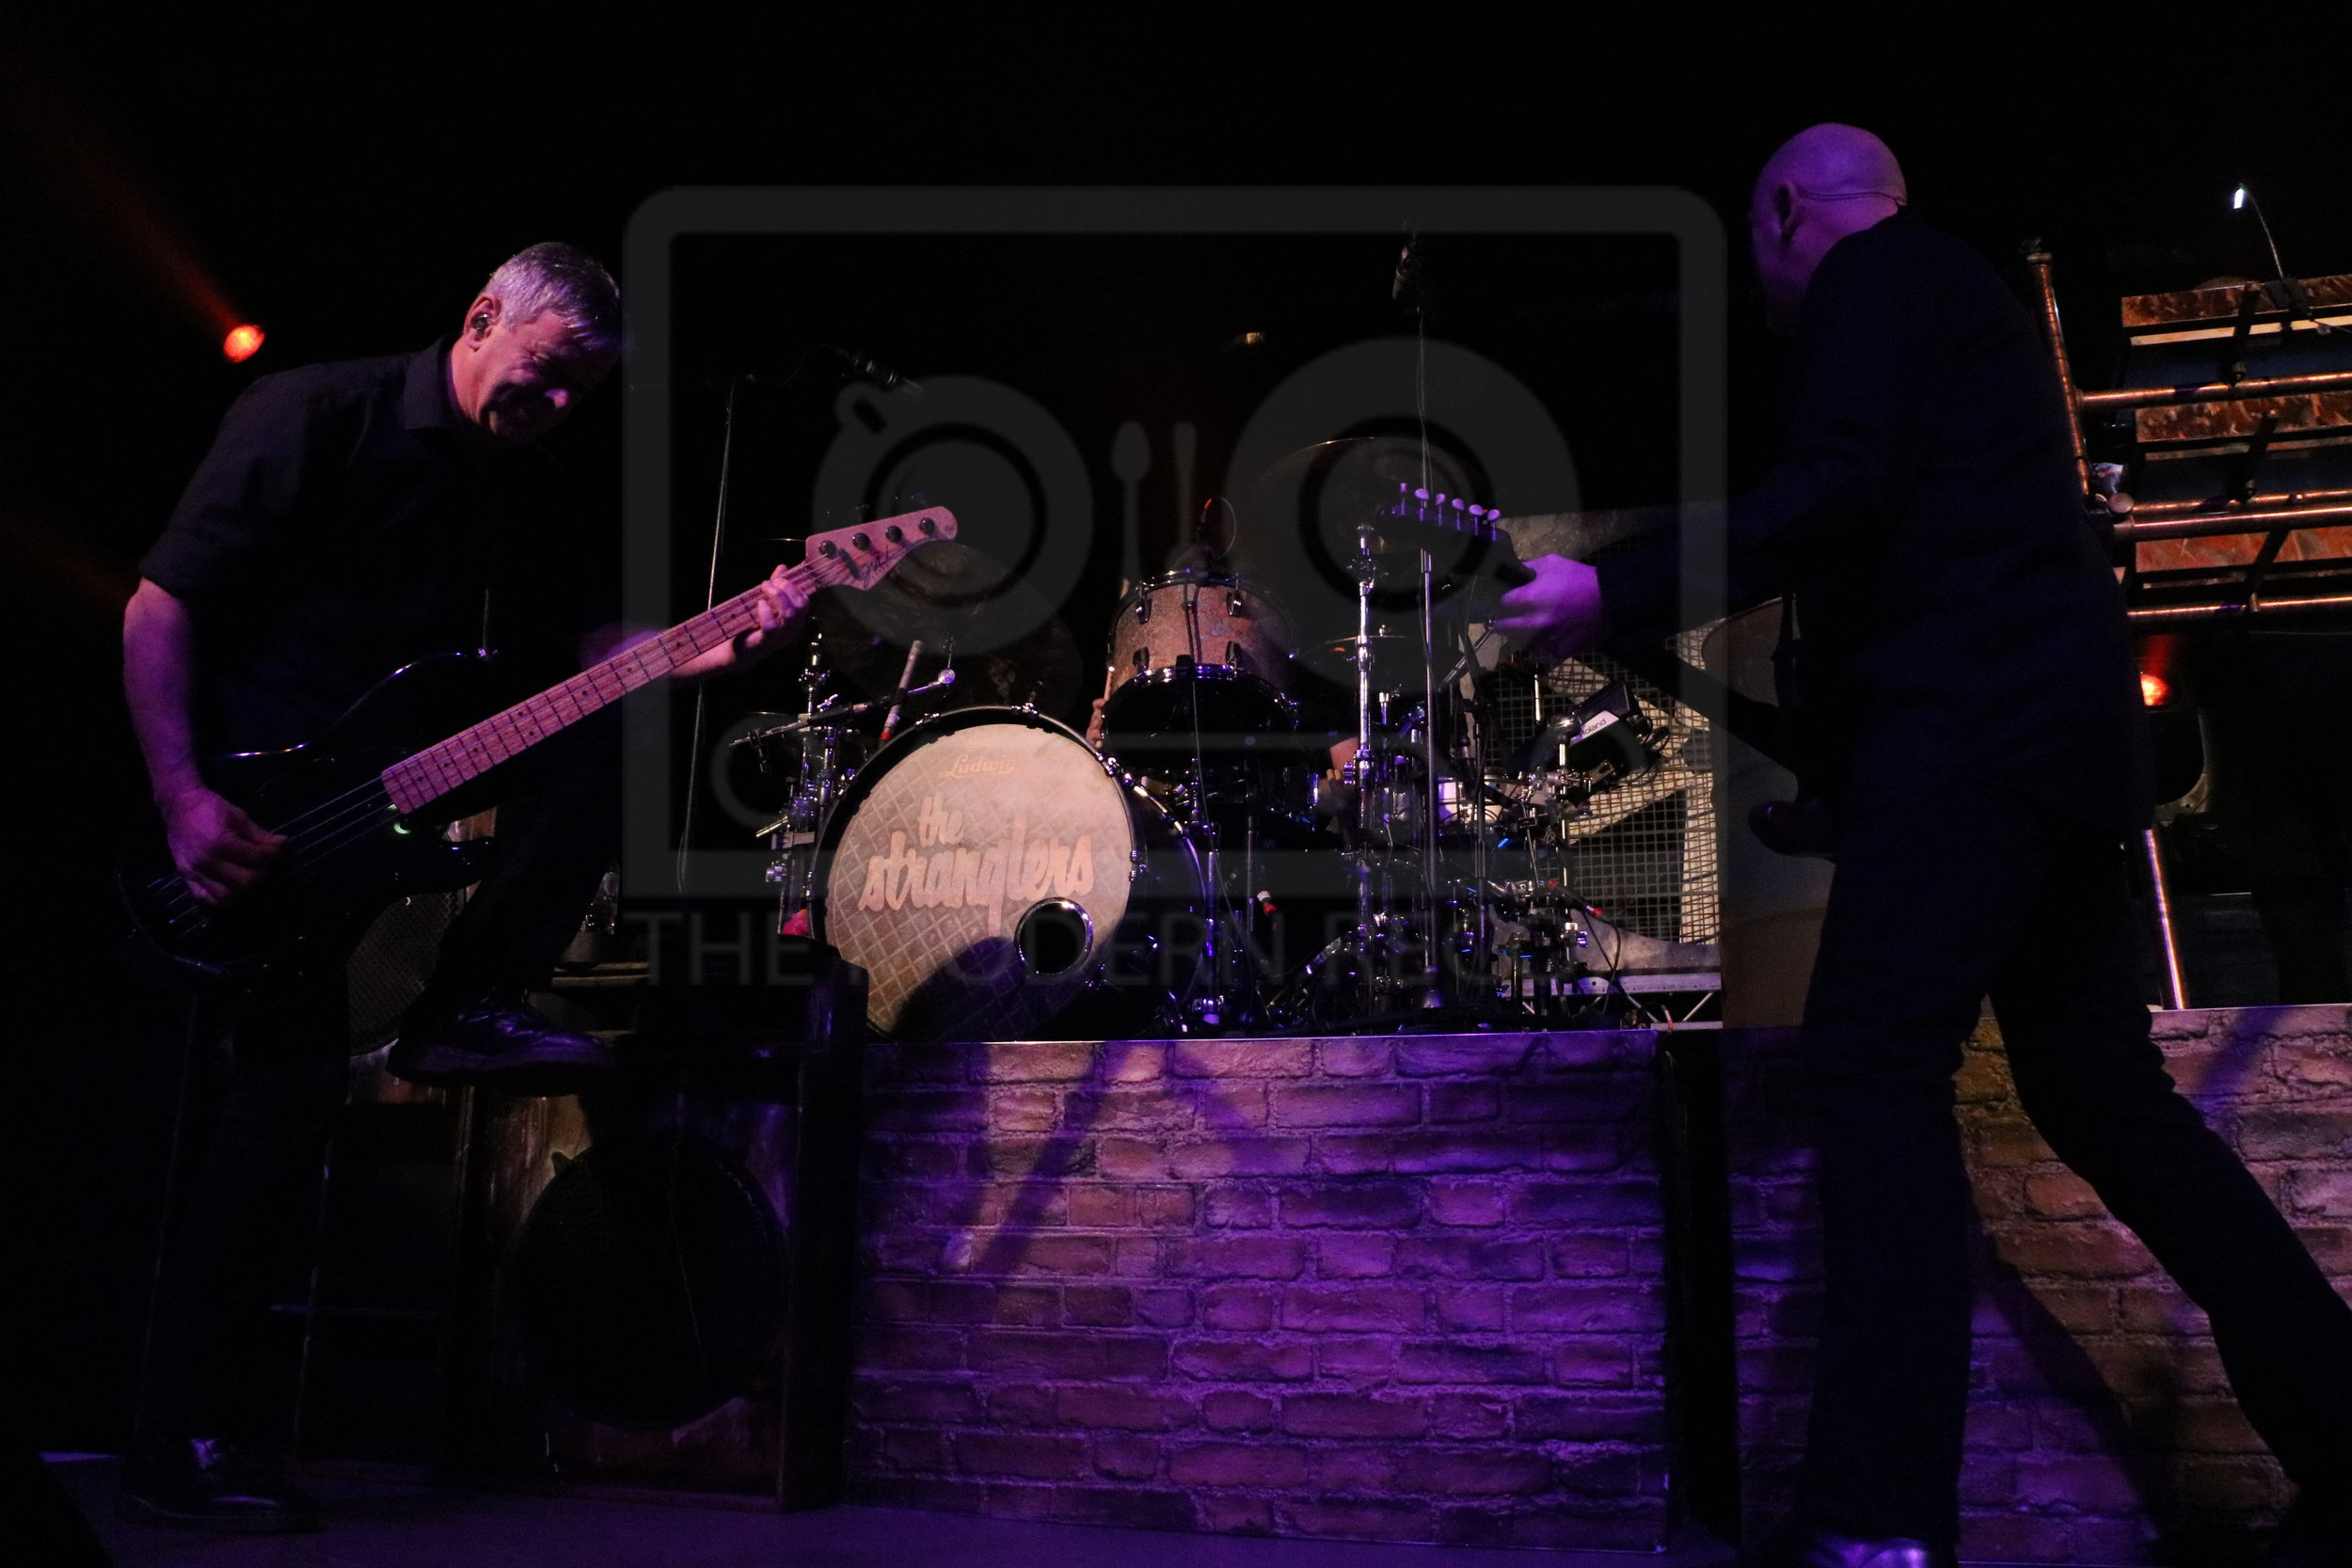 THE STRANGLERS PERFORMING ABERDEEN'S BEACH BALLROOM - 08.03.2019  PICTURE BY: COREY MCKAY PHOTOGRAPHY